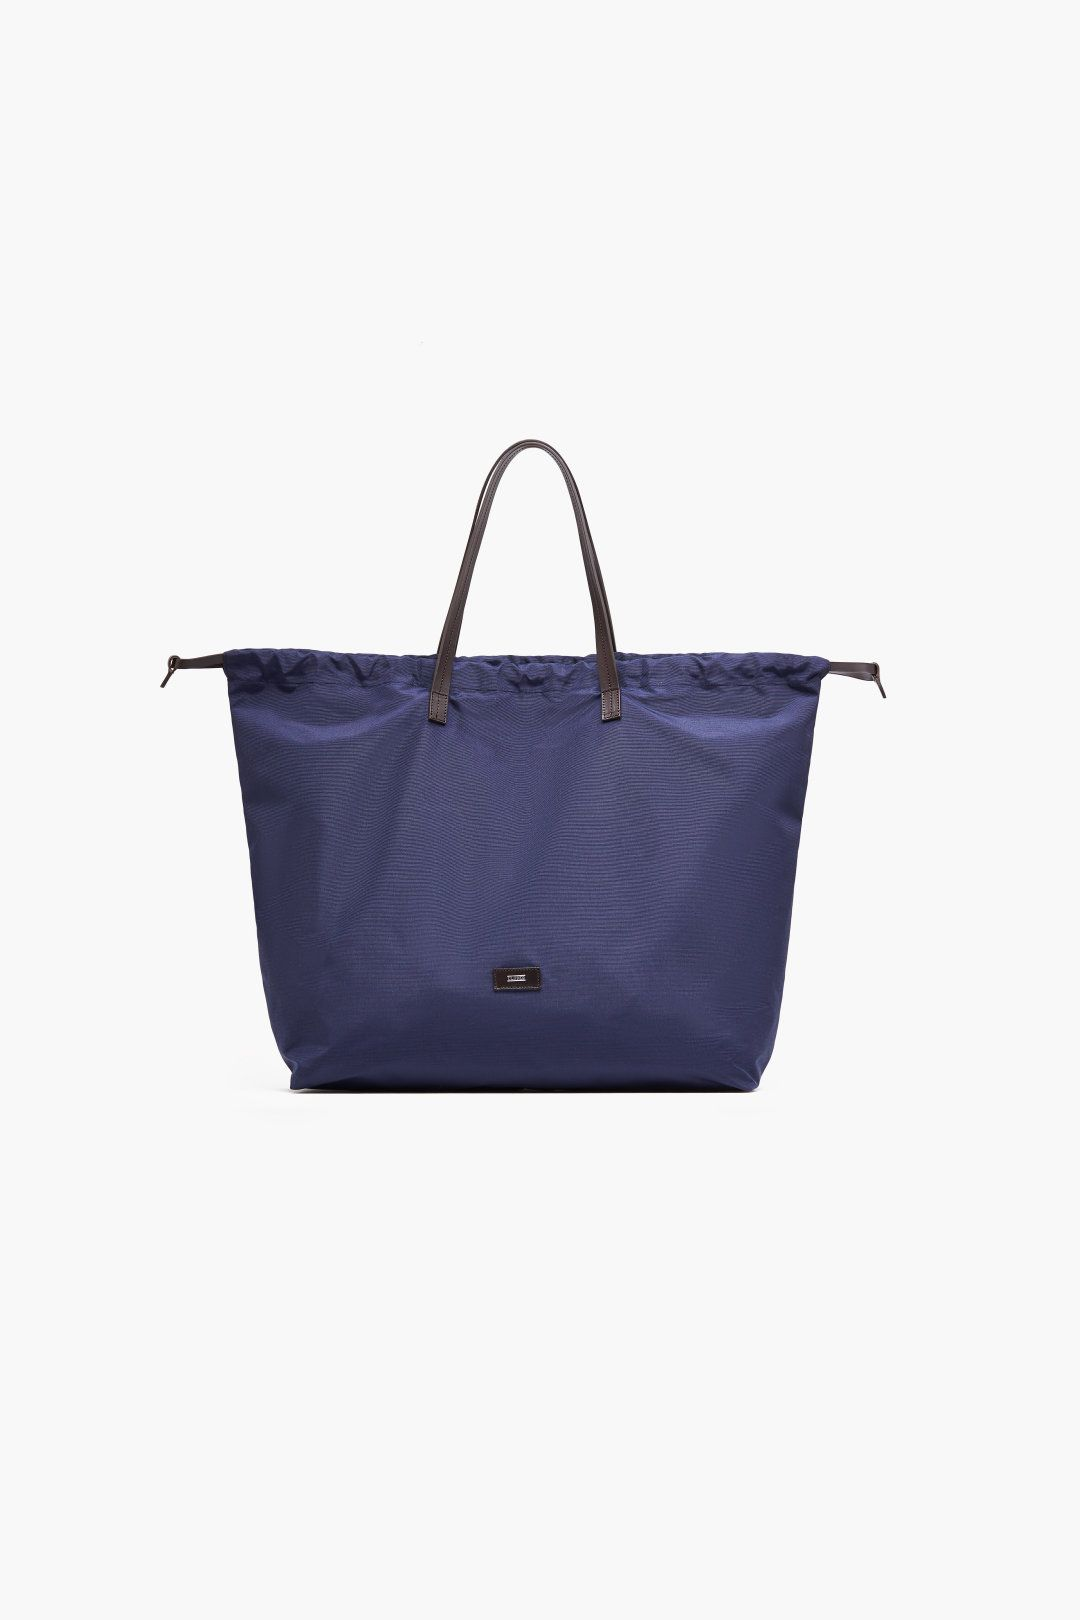 Nylon Bag With Leather Details Made Of High Quality German